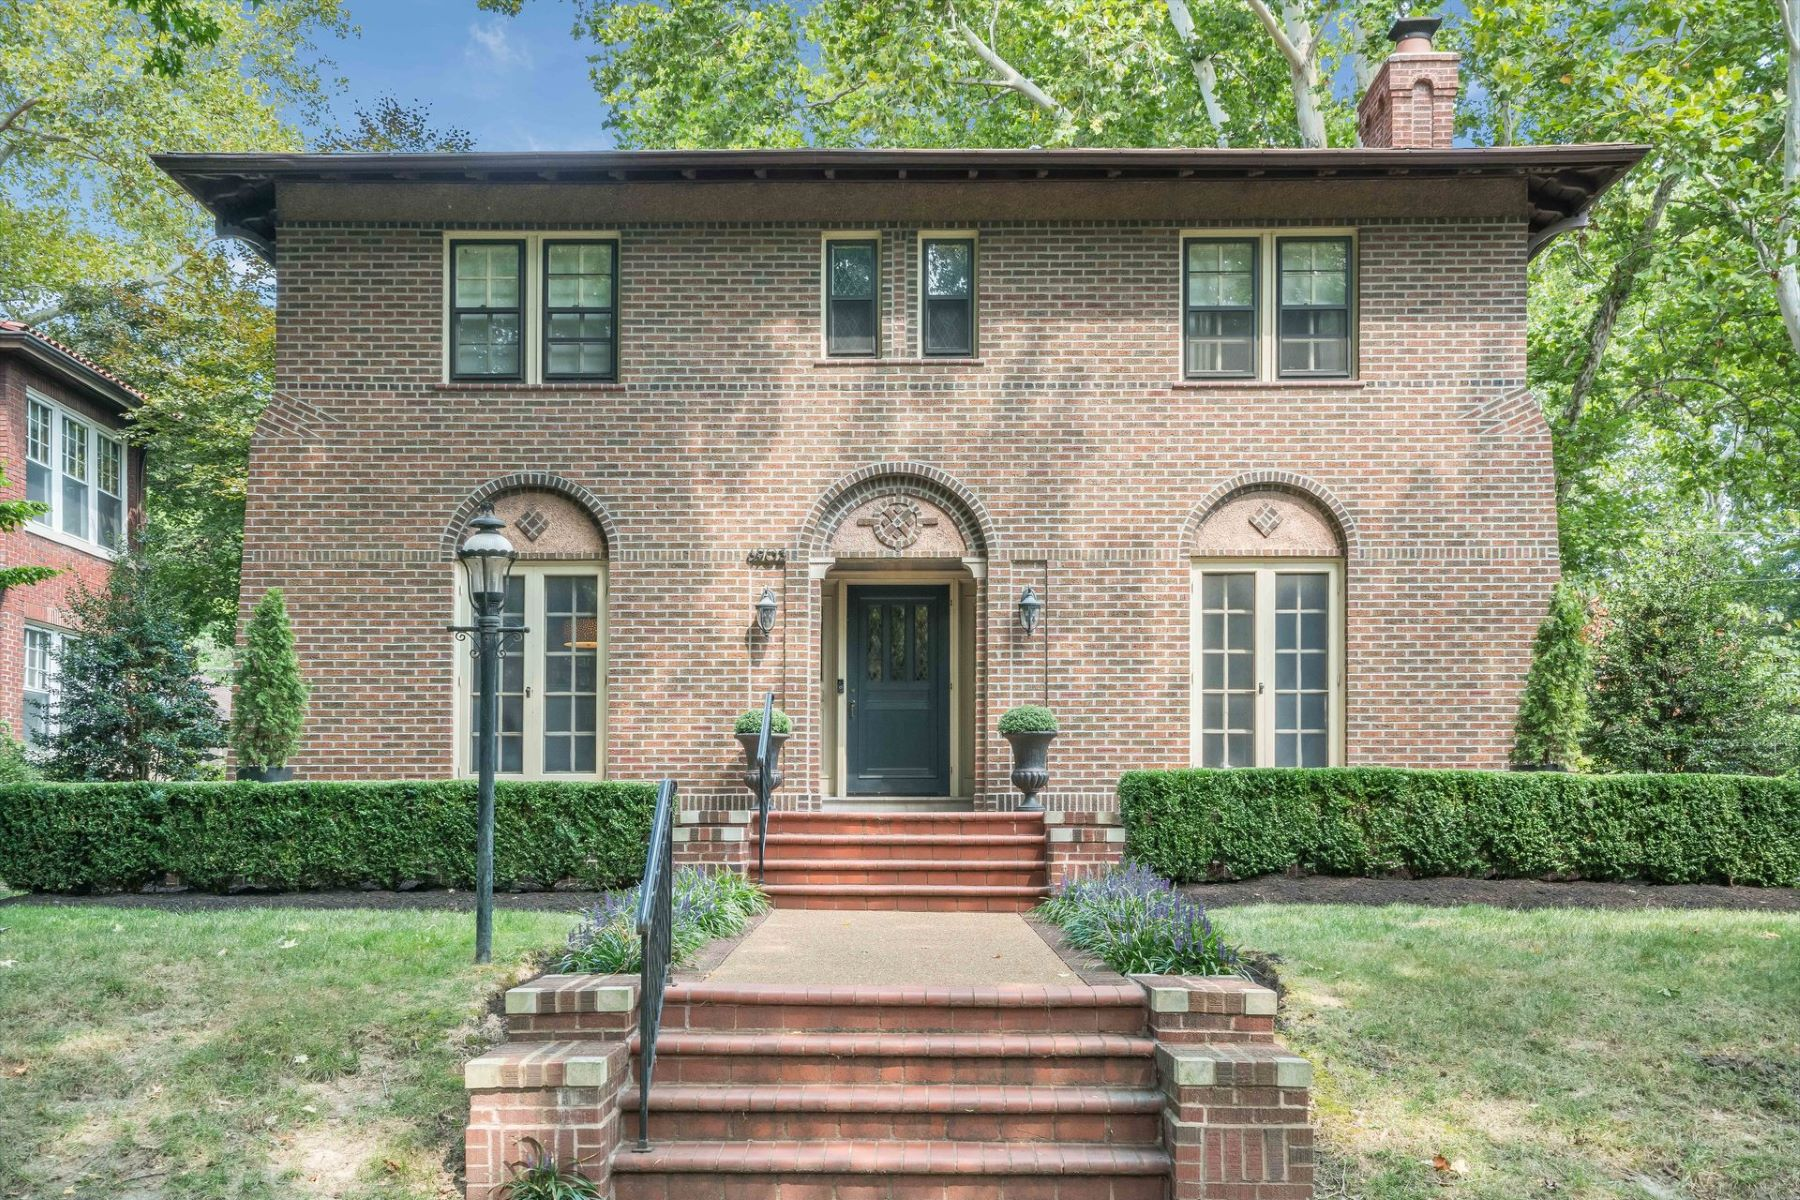 Single Family Homes for Sale at Stately Elegant Home In Coveted Ames Place 6903 Waterman Avenue, University City, Missouri 63130 United States